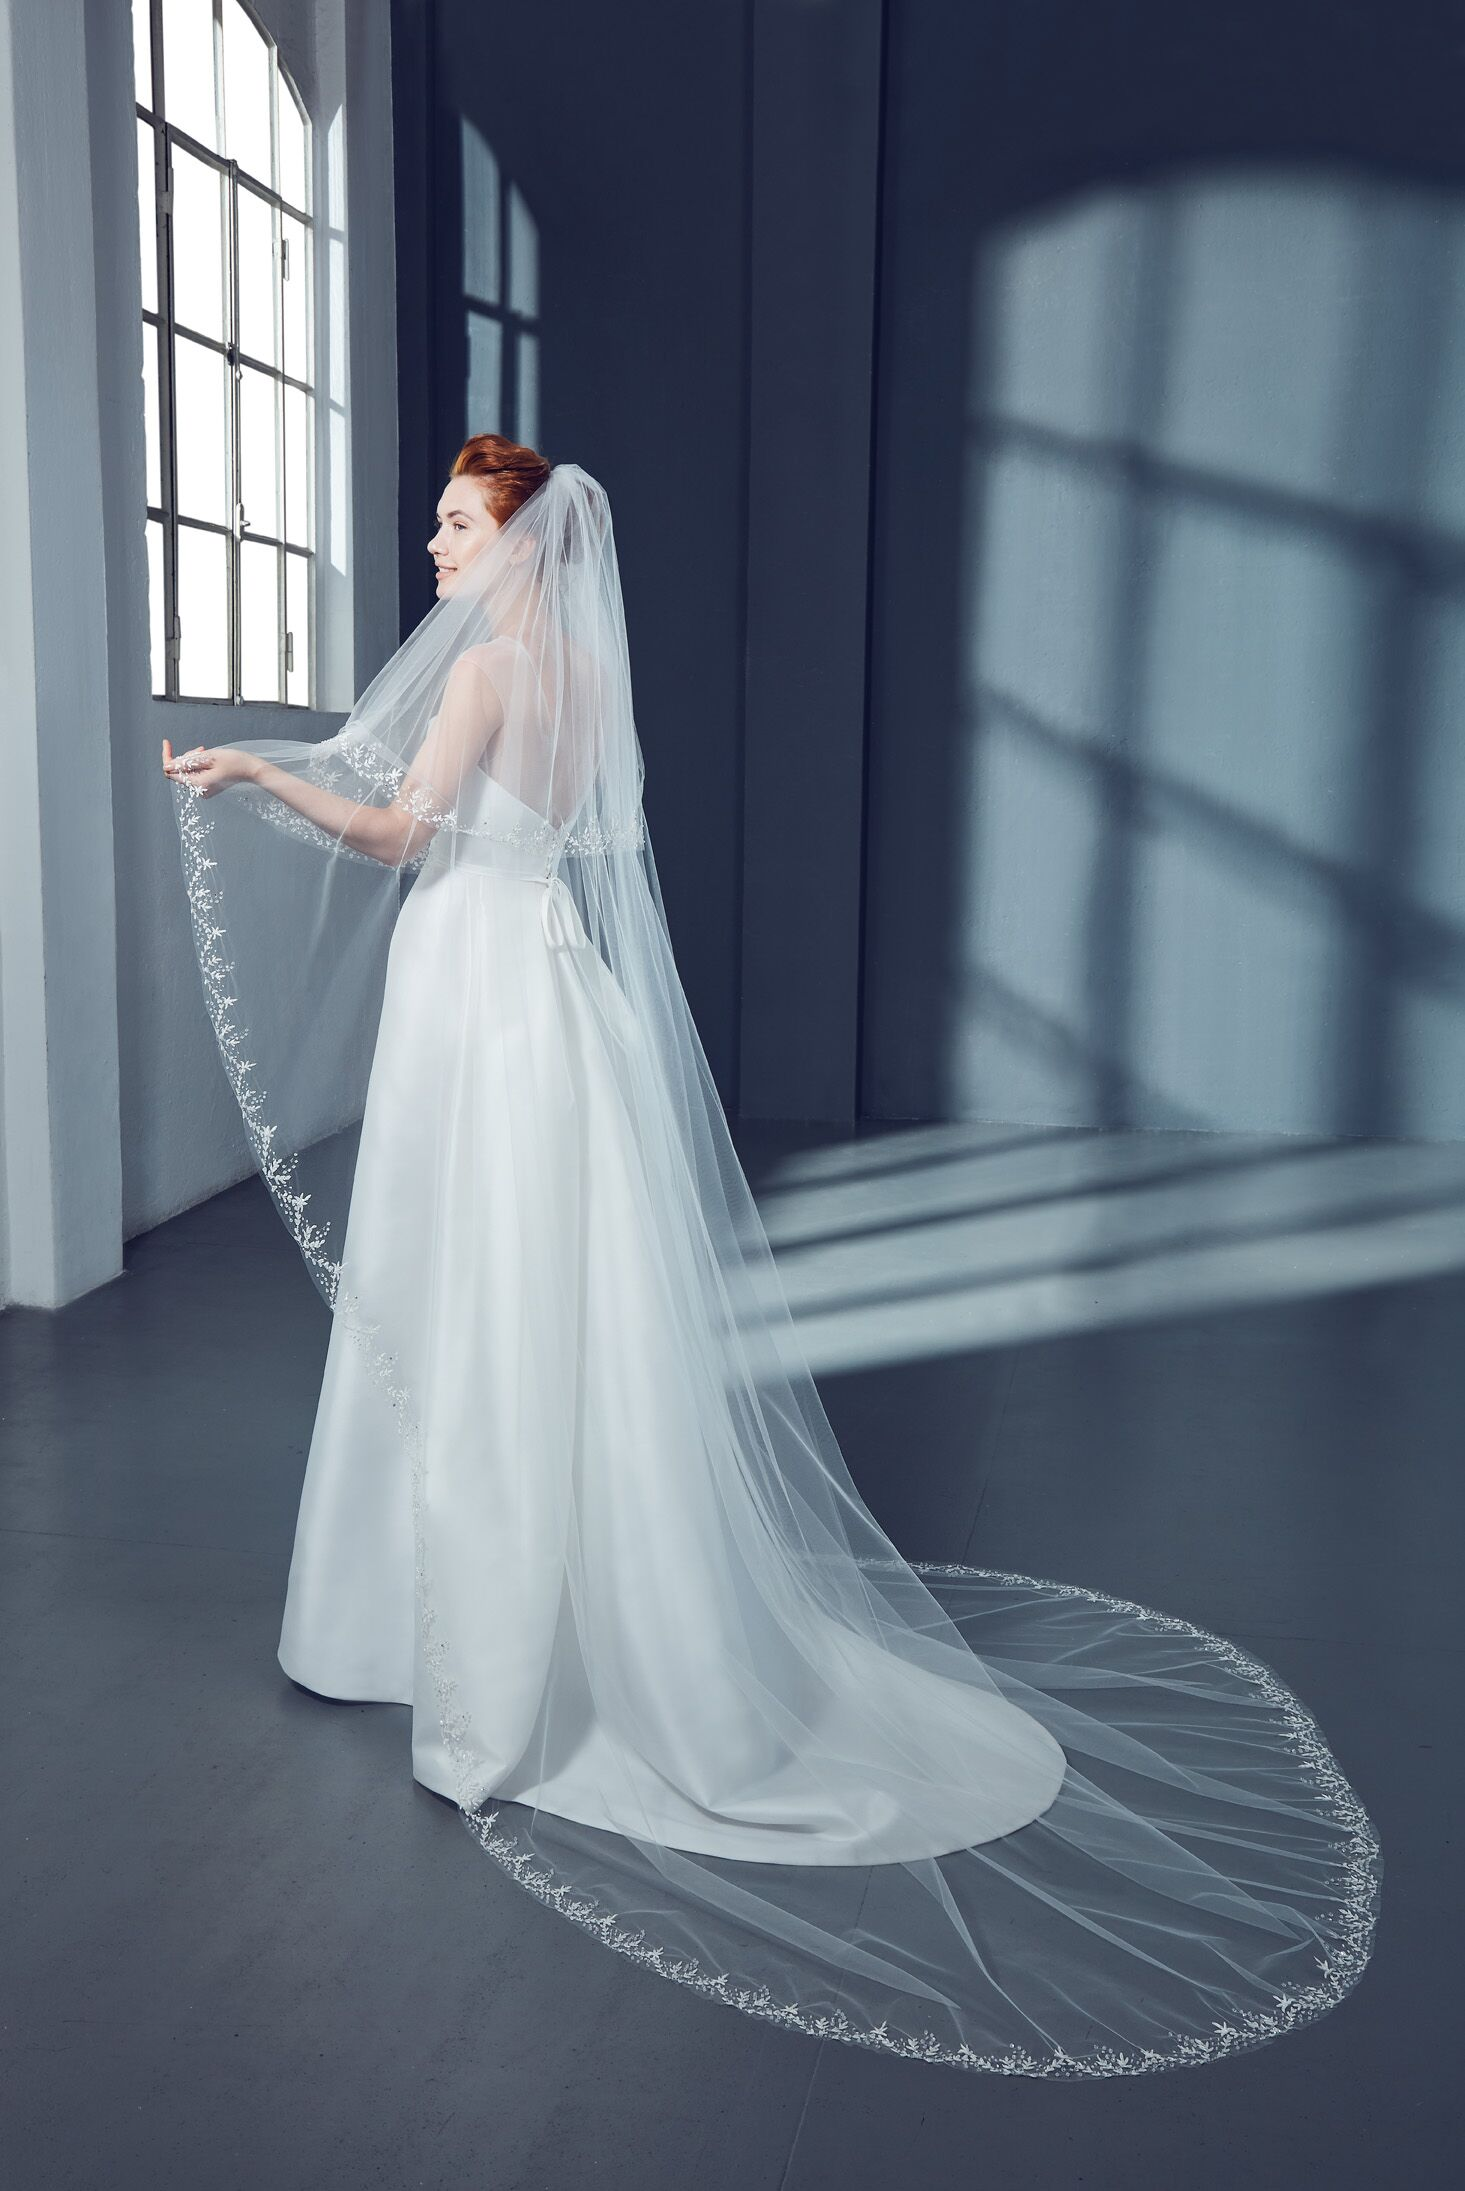 Cathedral Floral Bridal Veil in Tulle | Kleinfeld Bridal